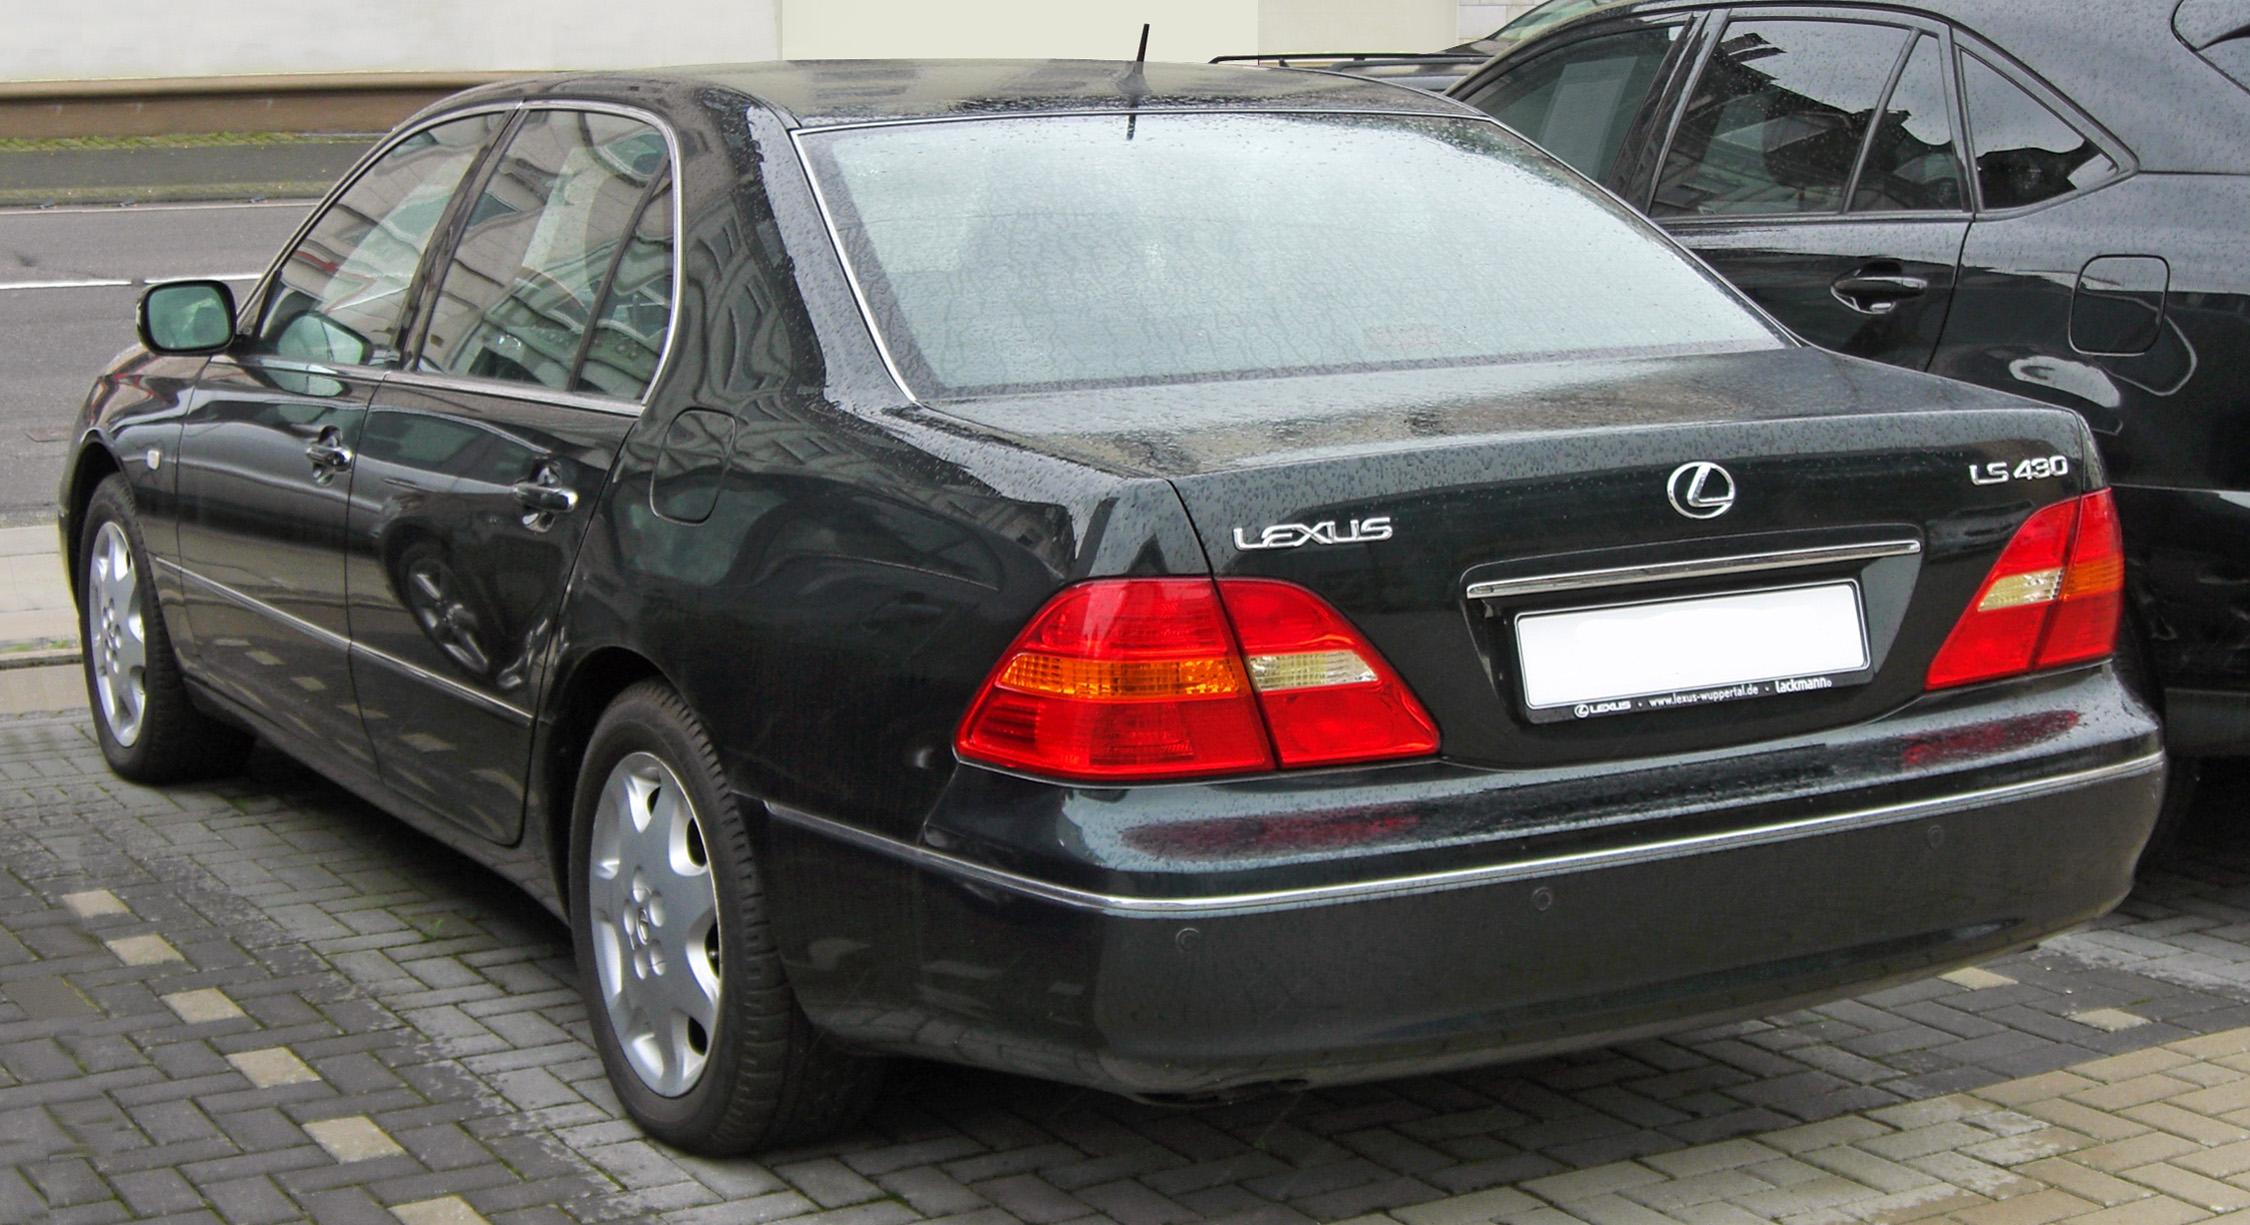 Popular Interesting likewise 2018 together with Matra MS650 together with Beetle moreover 3204 2005 Lexus Sc 430 3. on lexus model 3